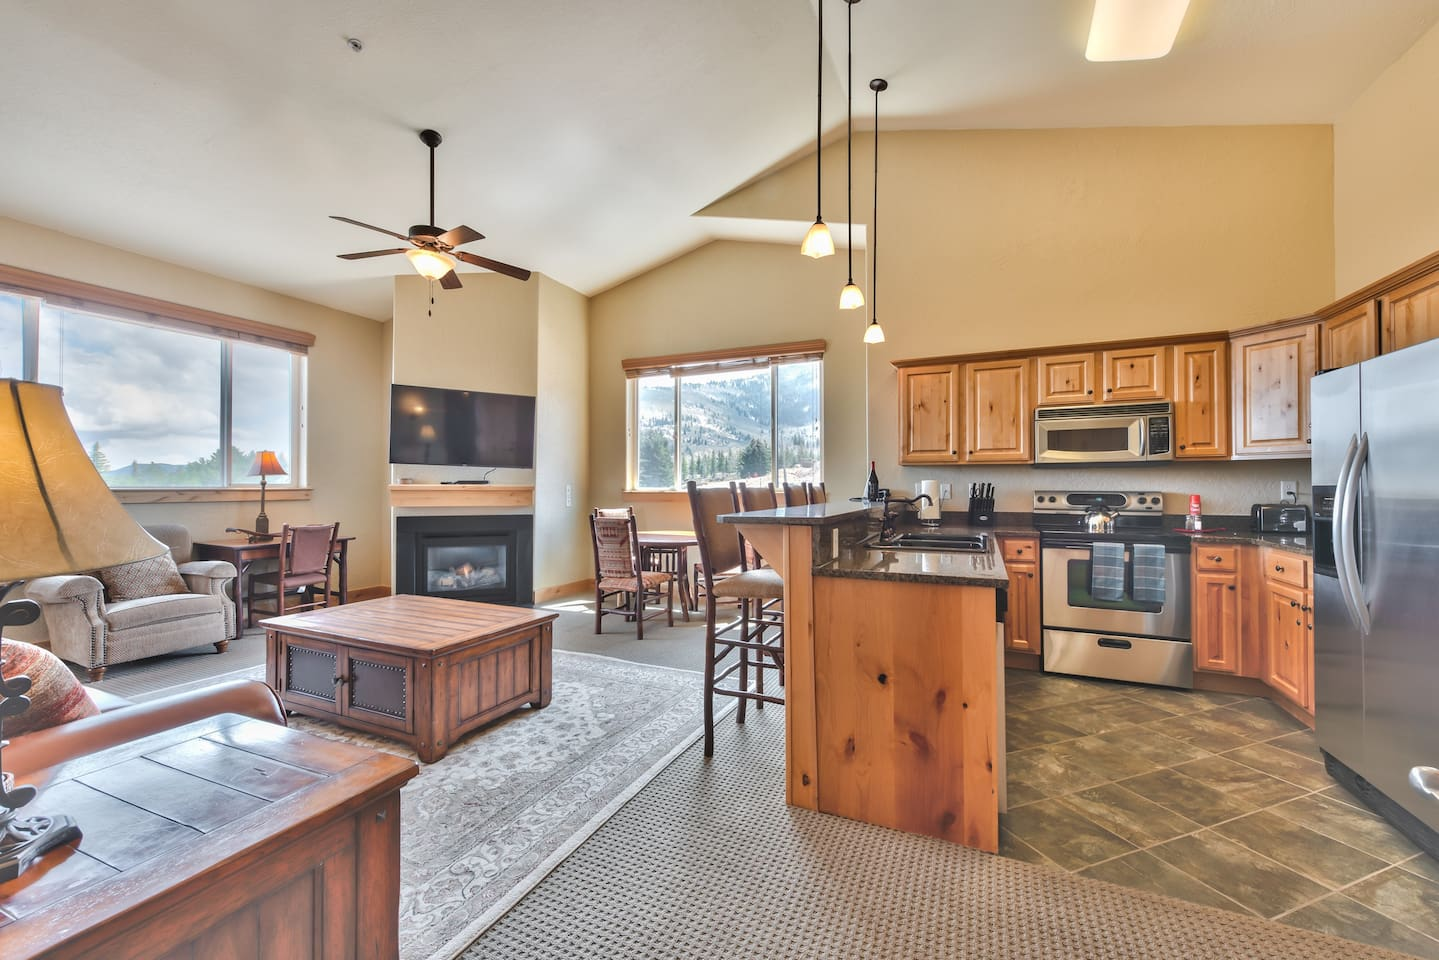 Corner unit with spacious living and kitchen areas